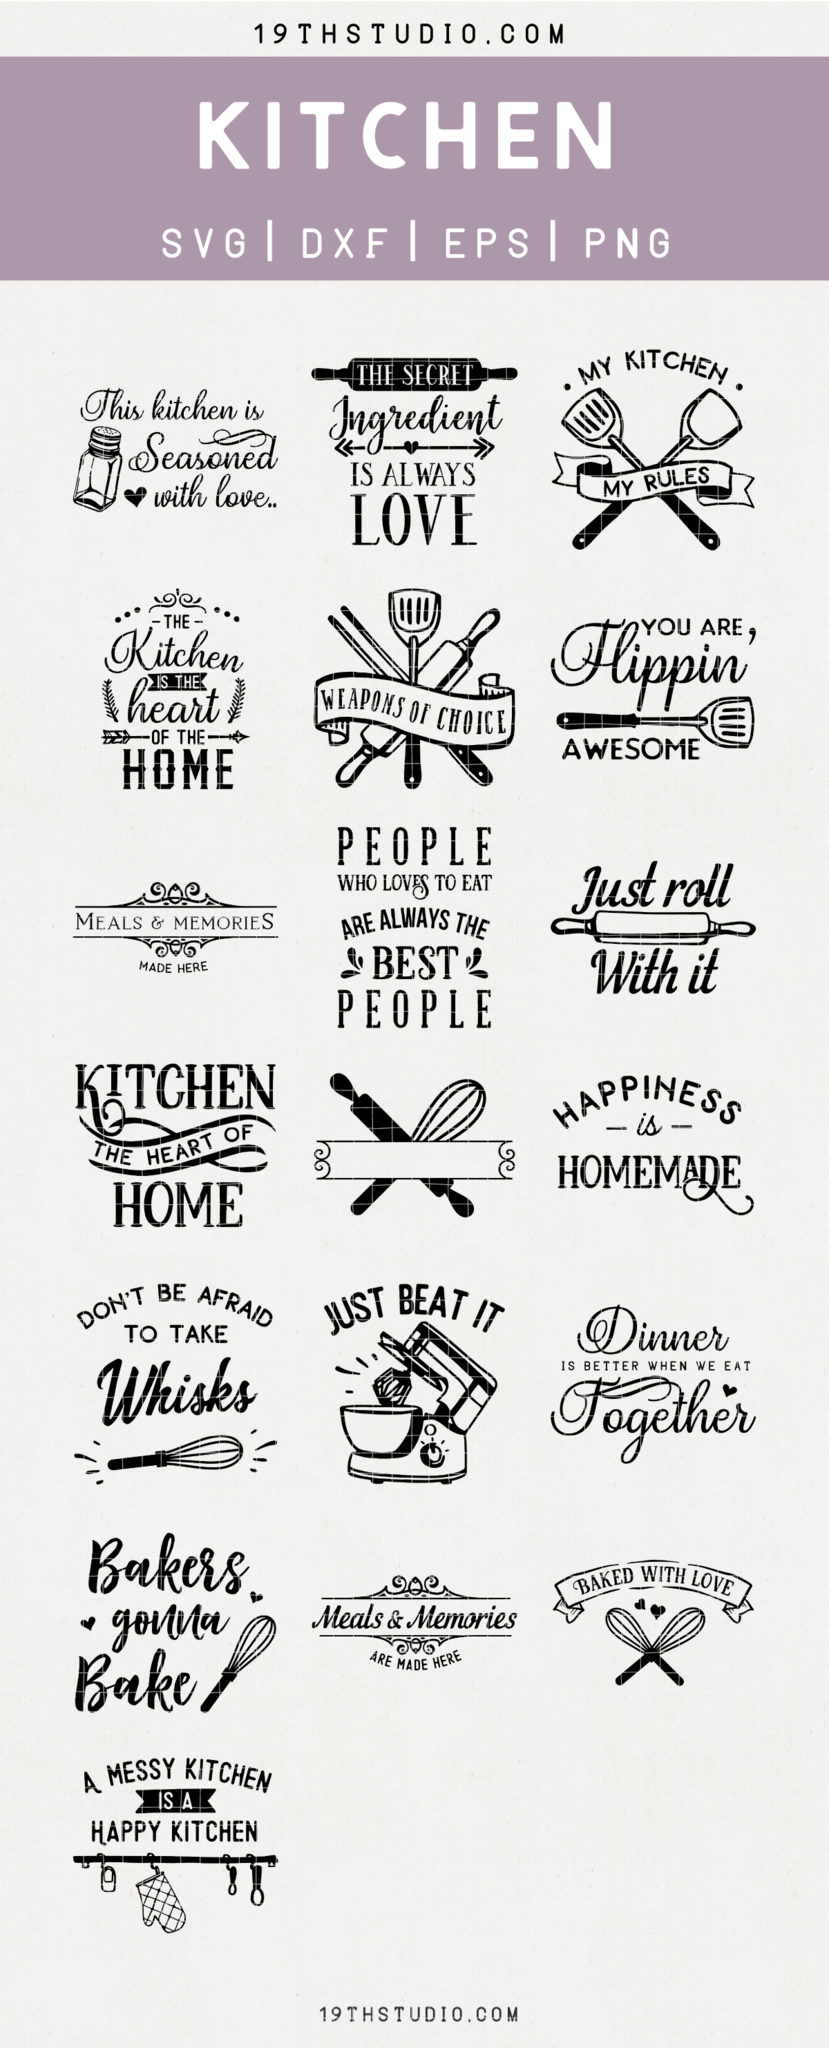 Kitchen SVG Files has 19 cut files that are perfect DIY home